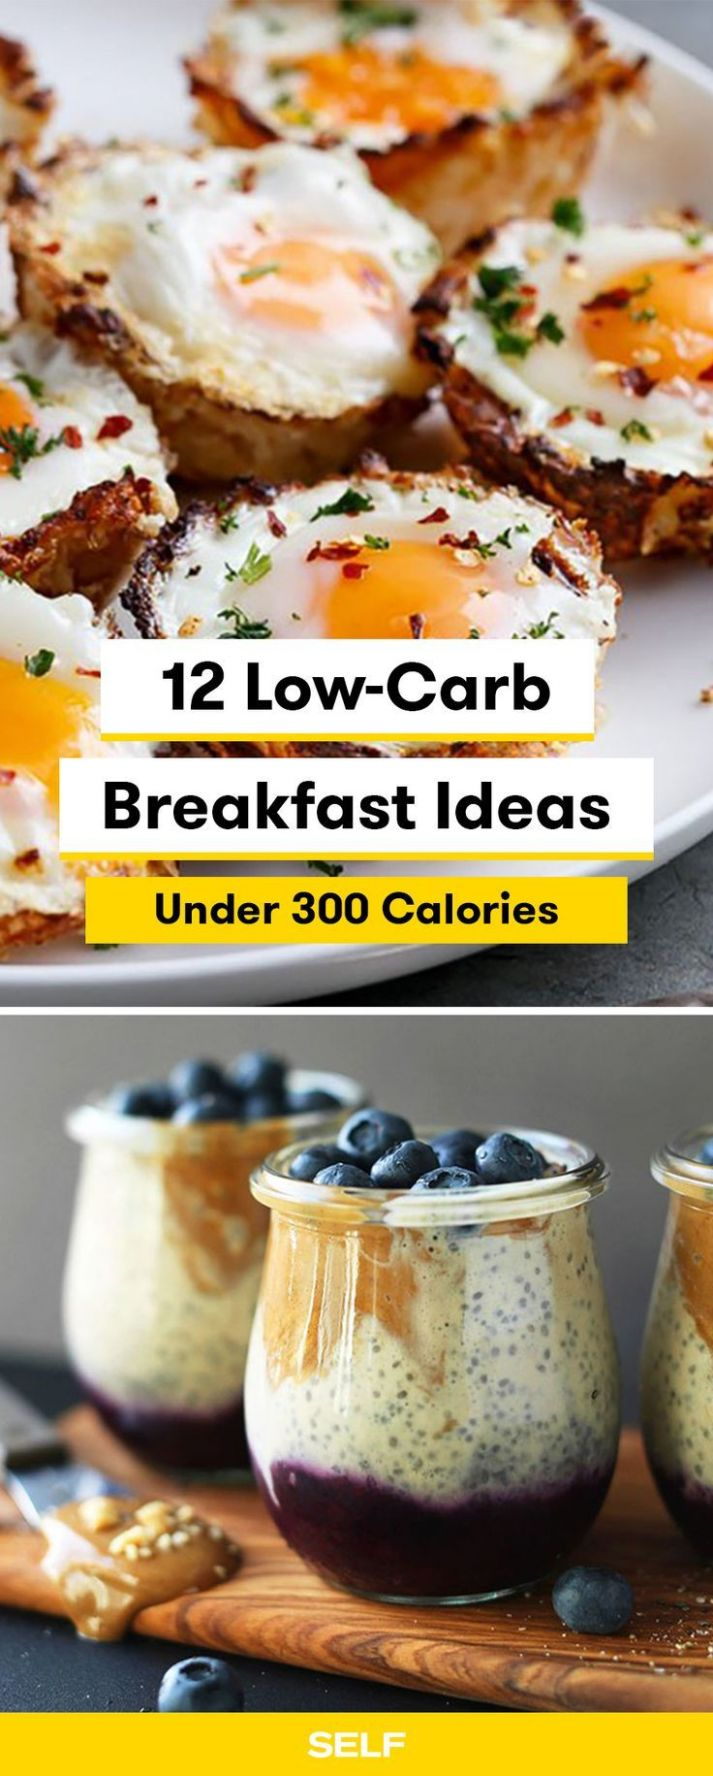 10 Low-Carb Breakfast Ideas Under 10 Calories | Low calorie ..